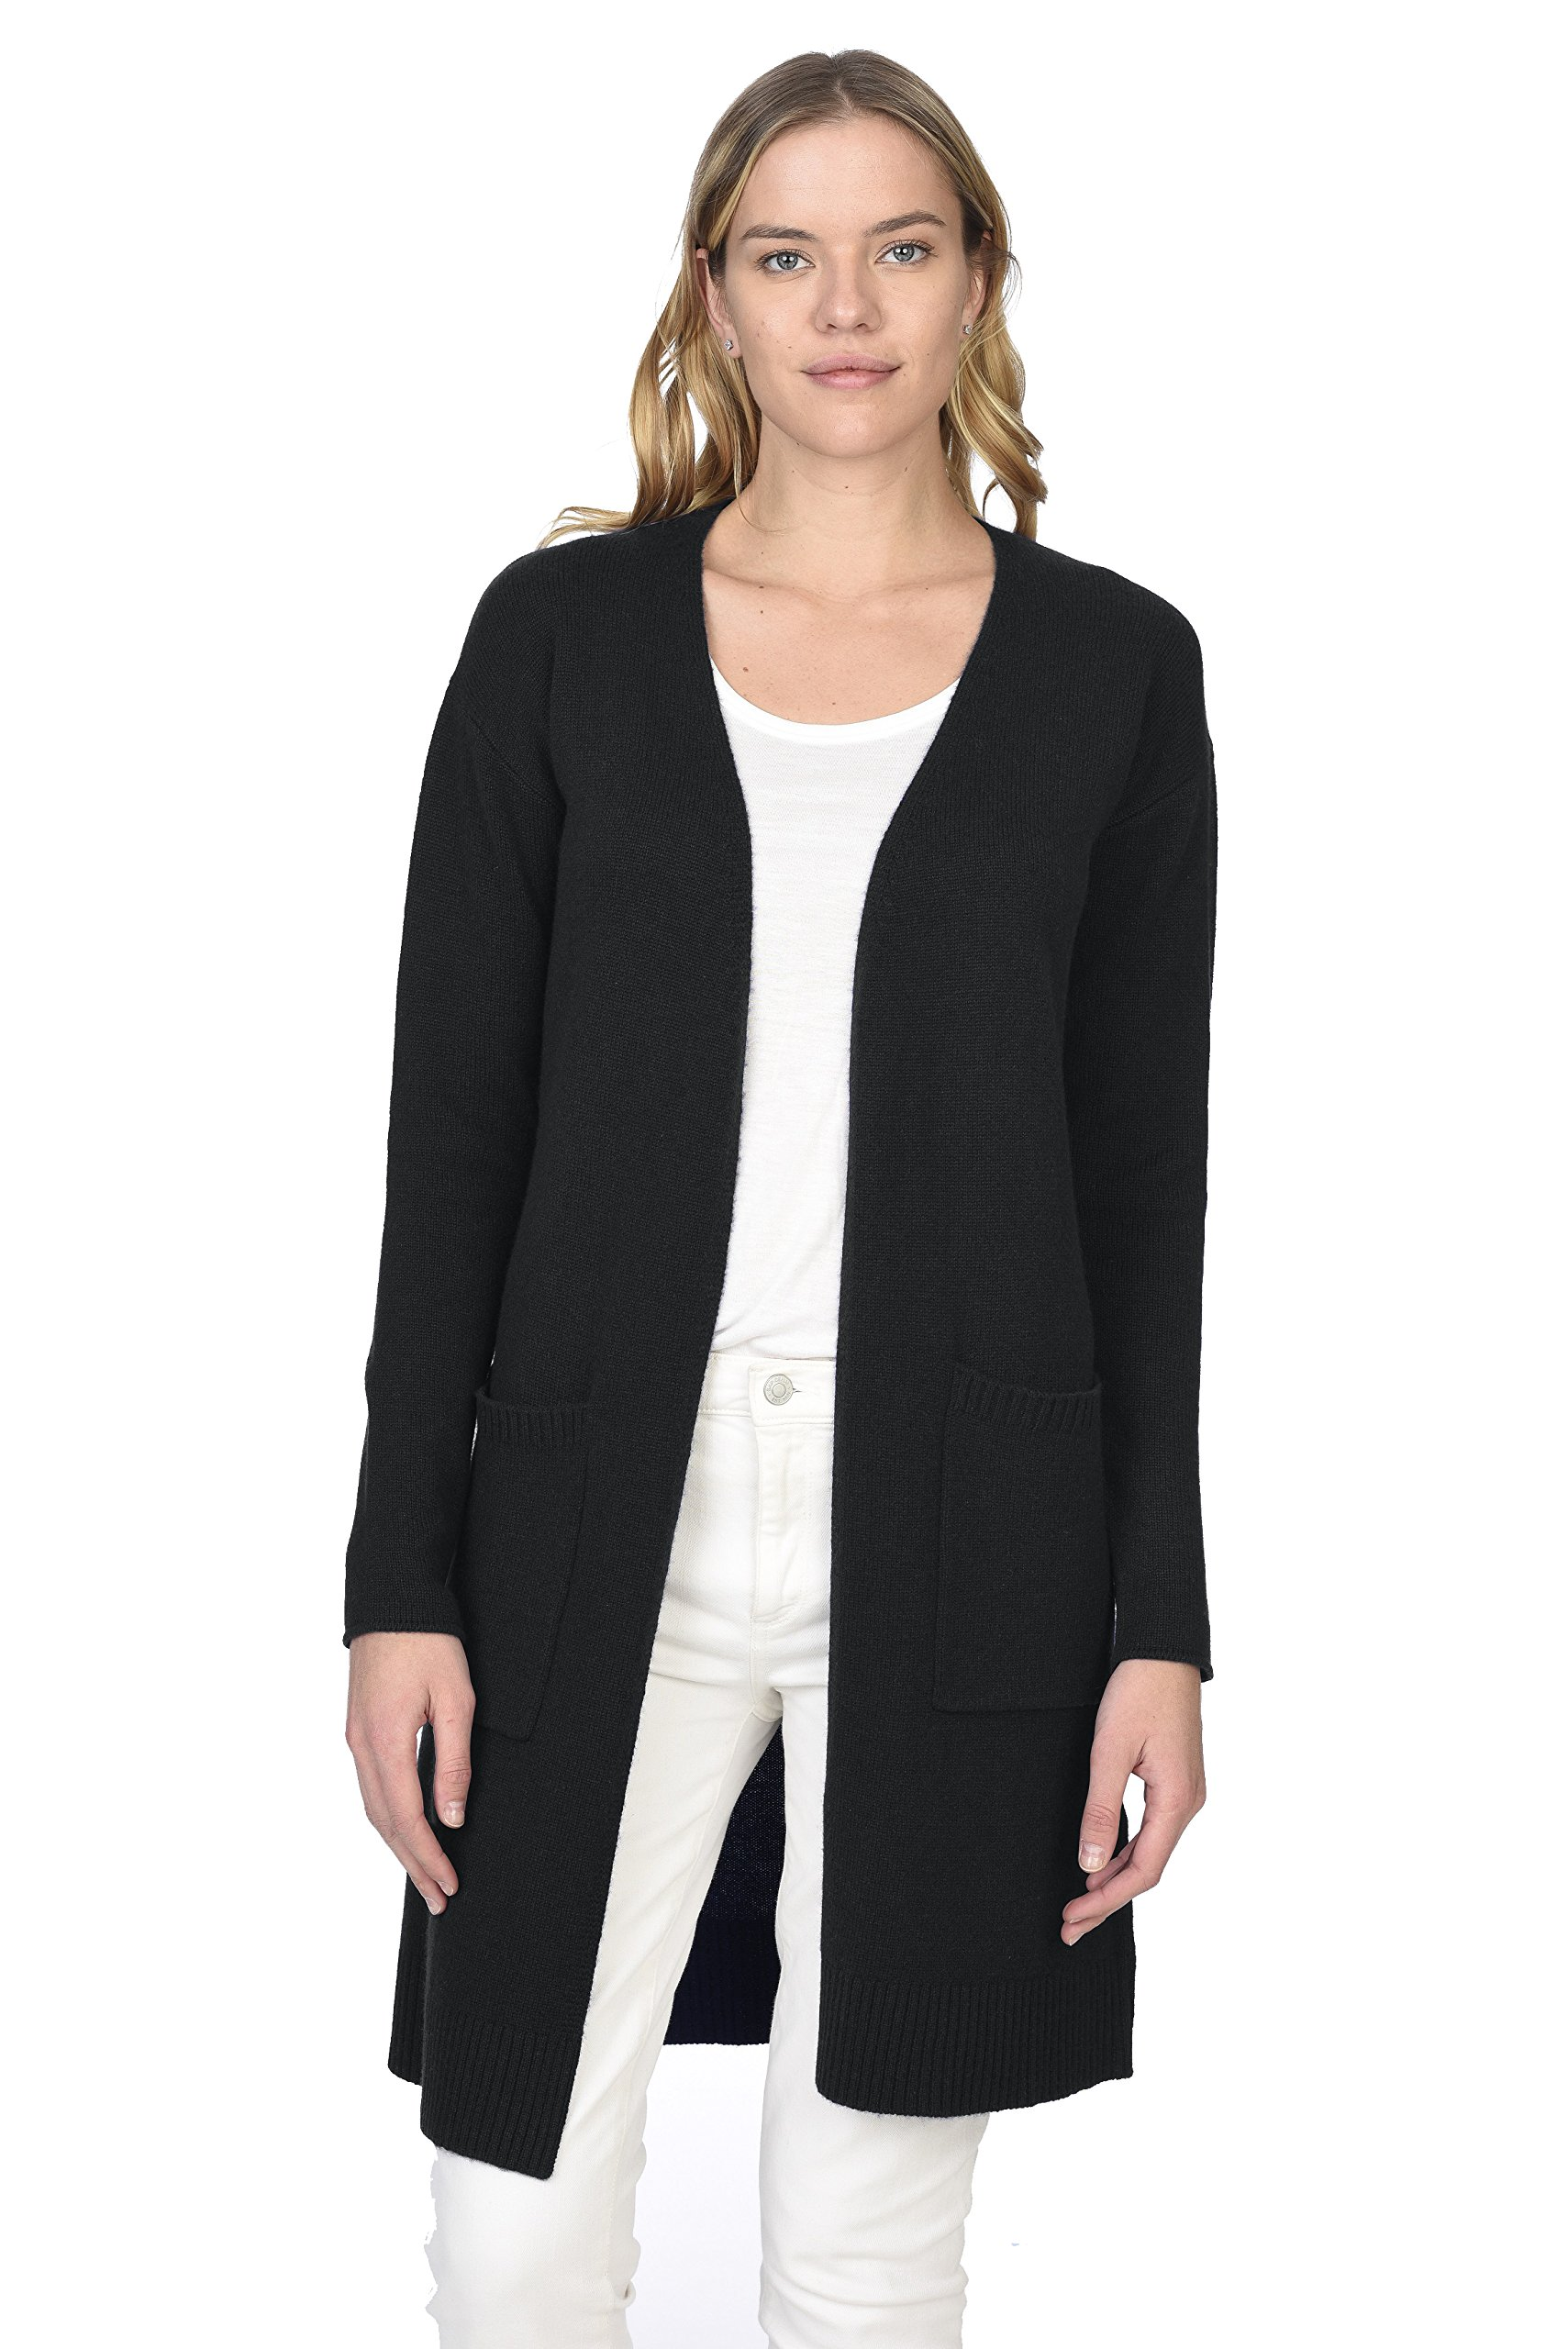 State Cashmere Women's 100% Pure Cashmere Open Front Long Cardigan, Black, Large